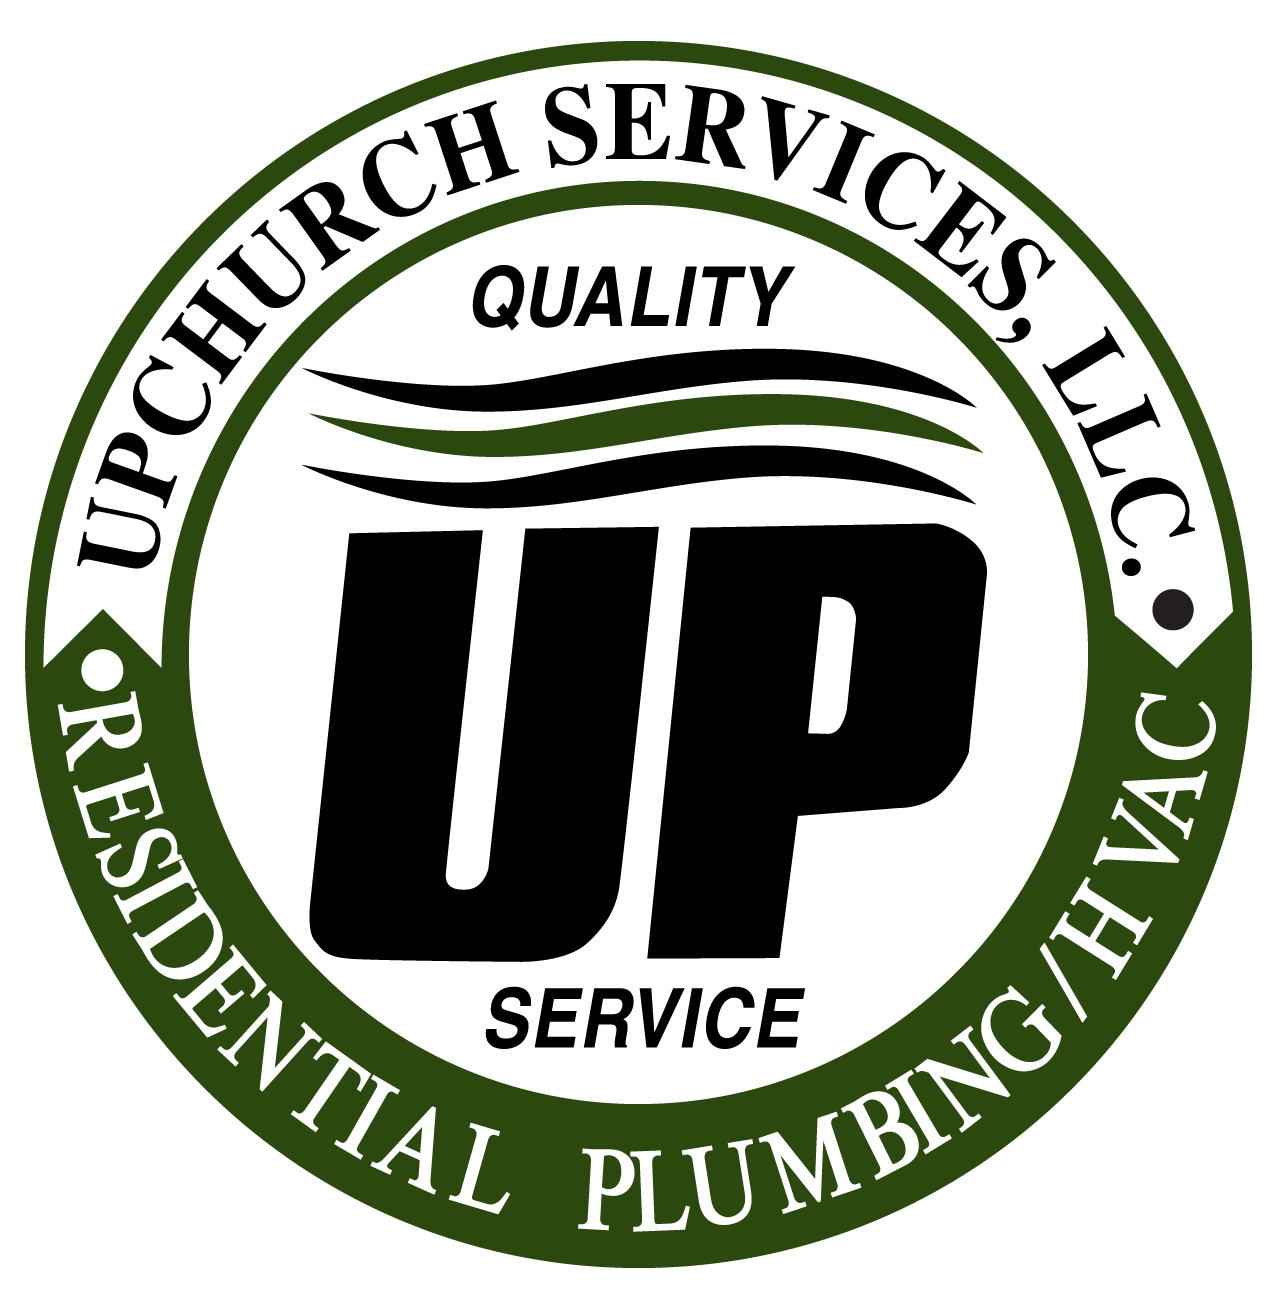 Call Upchurch Services, LLC for reliable Furnace repair in Memphis TN